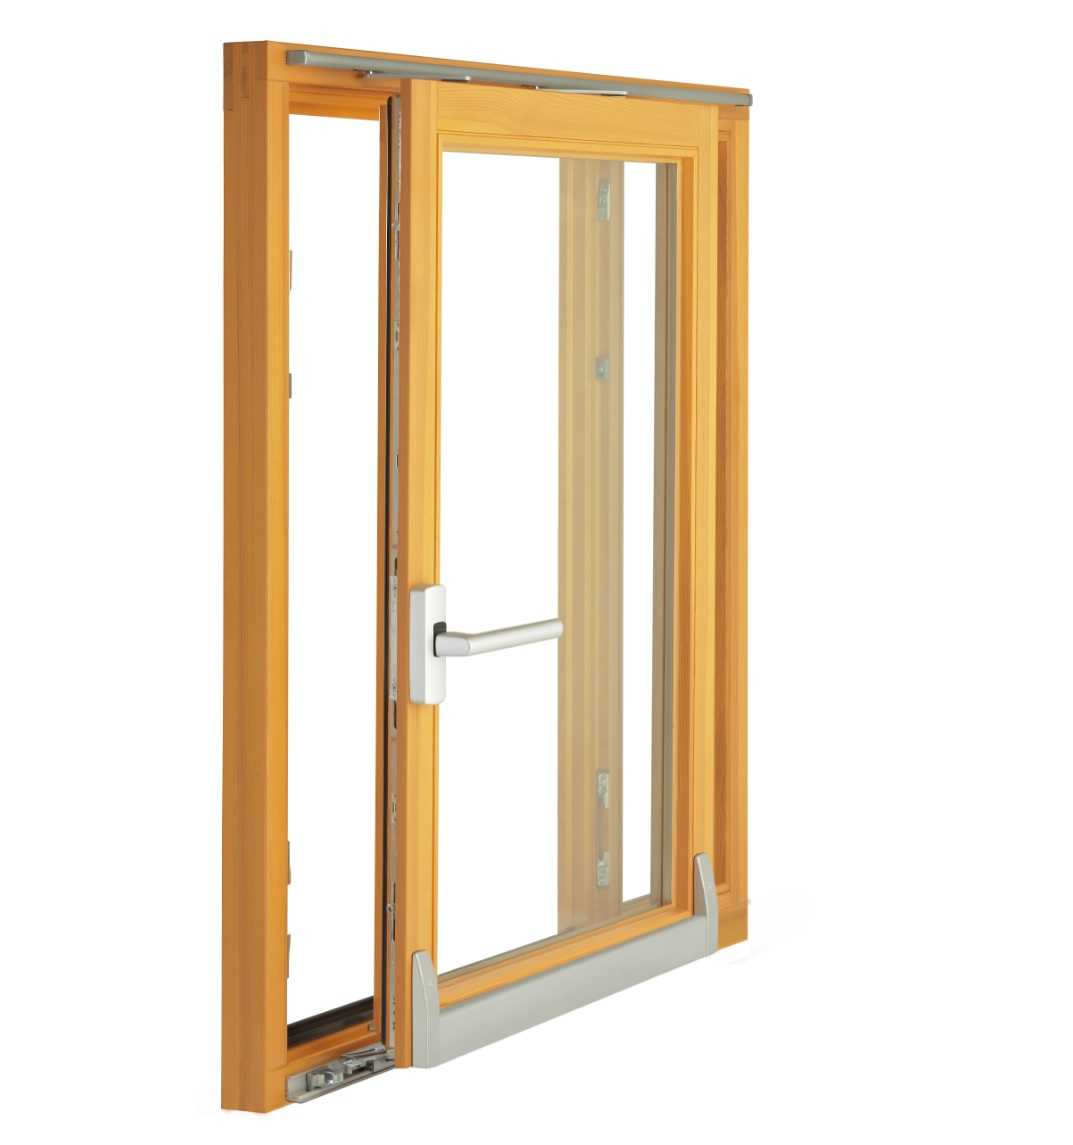 Timber Tilt and Slide Doors